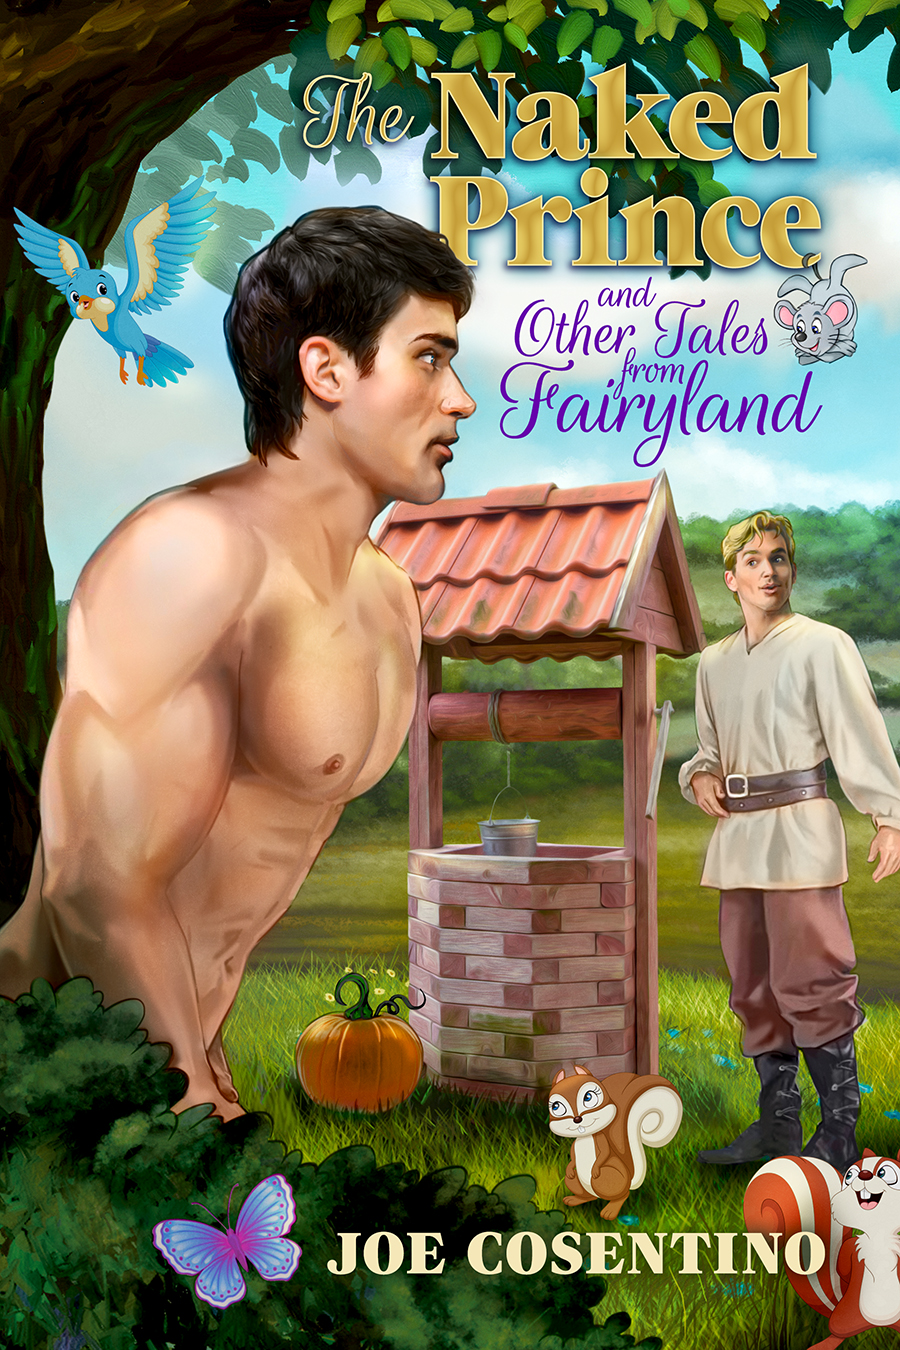 Guest Post and Giveaway: The Naked Prince and Other Tales from Fairyland by Joe Cosentino